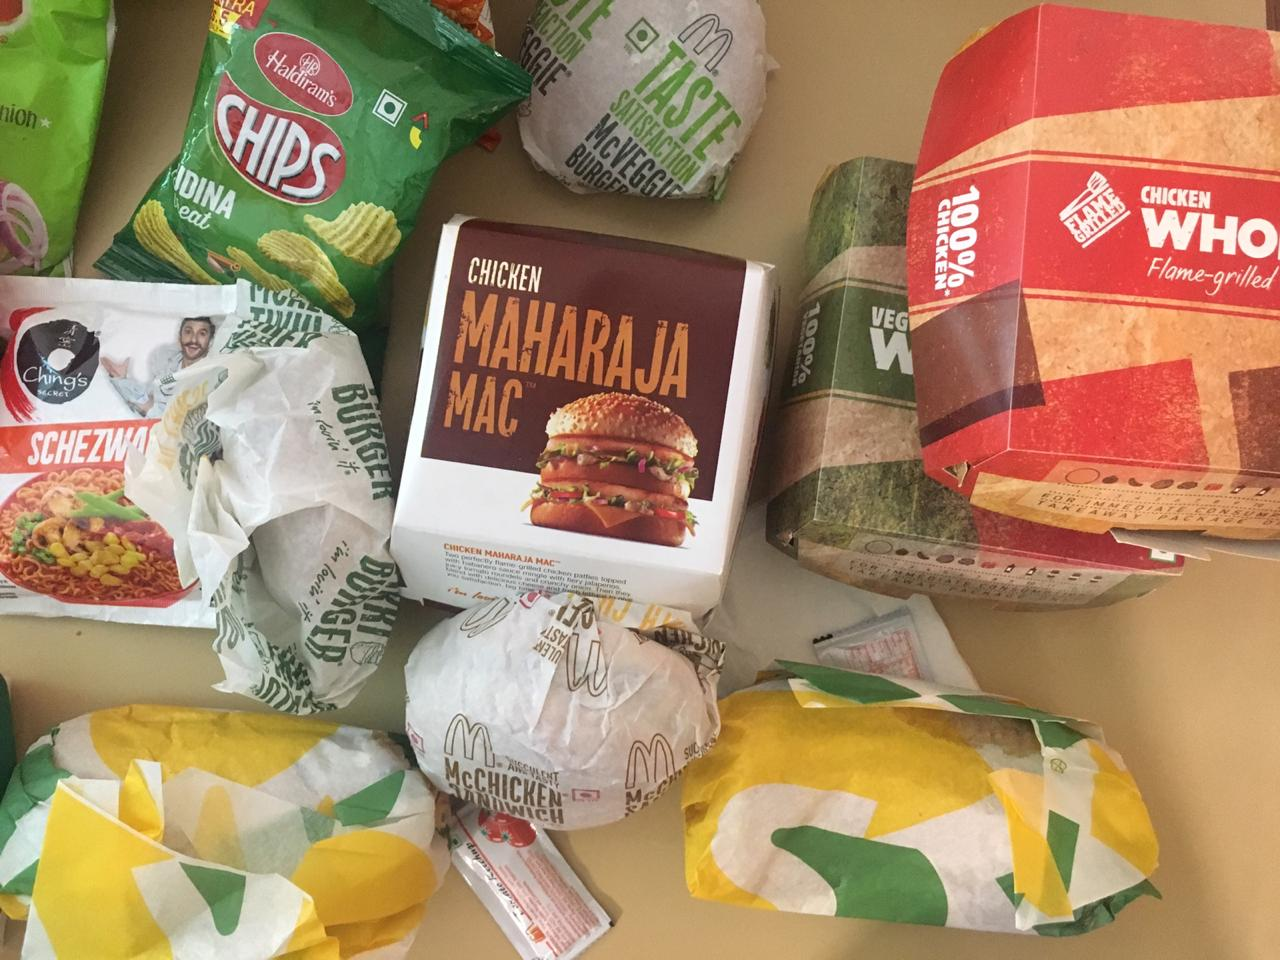 Packaged and fast foods contain dangerously high levels of salt, fat: CSE